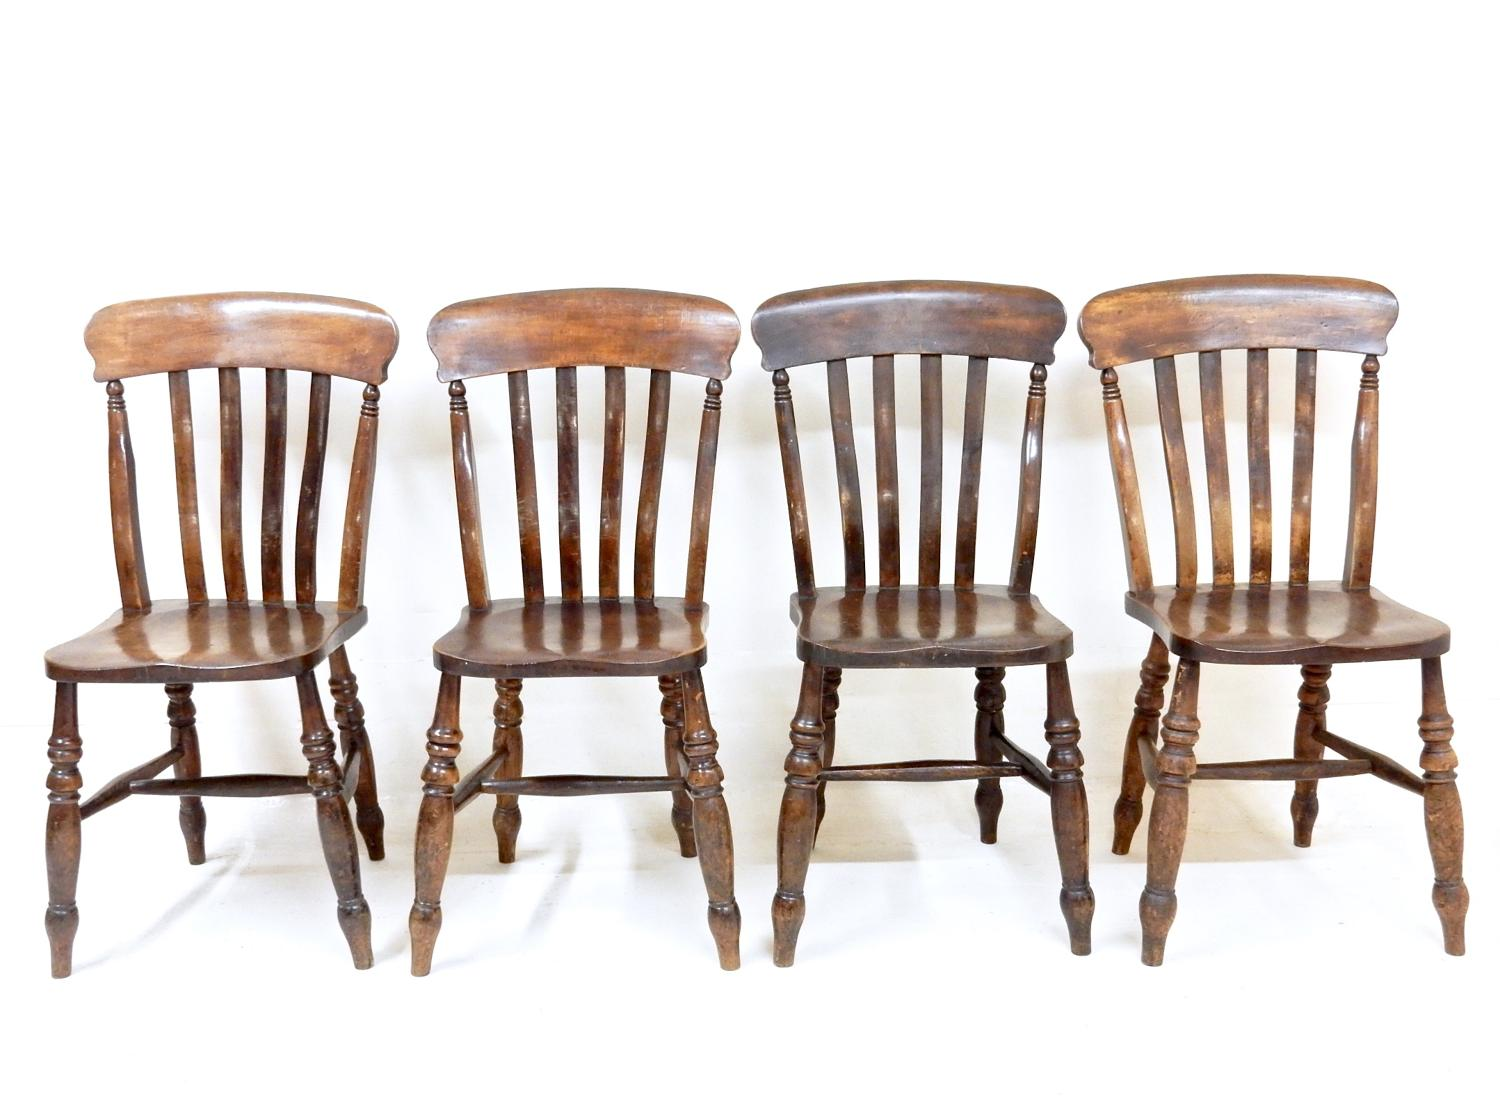 Antique kitchen dining chairs in tables and chairs for Table and chairs